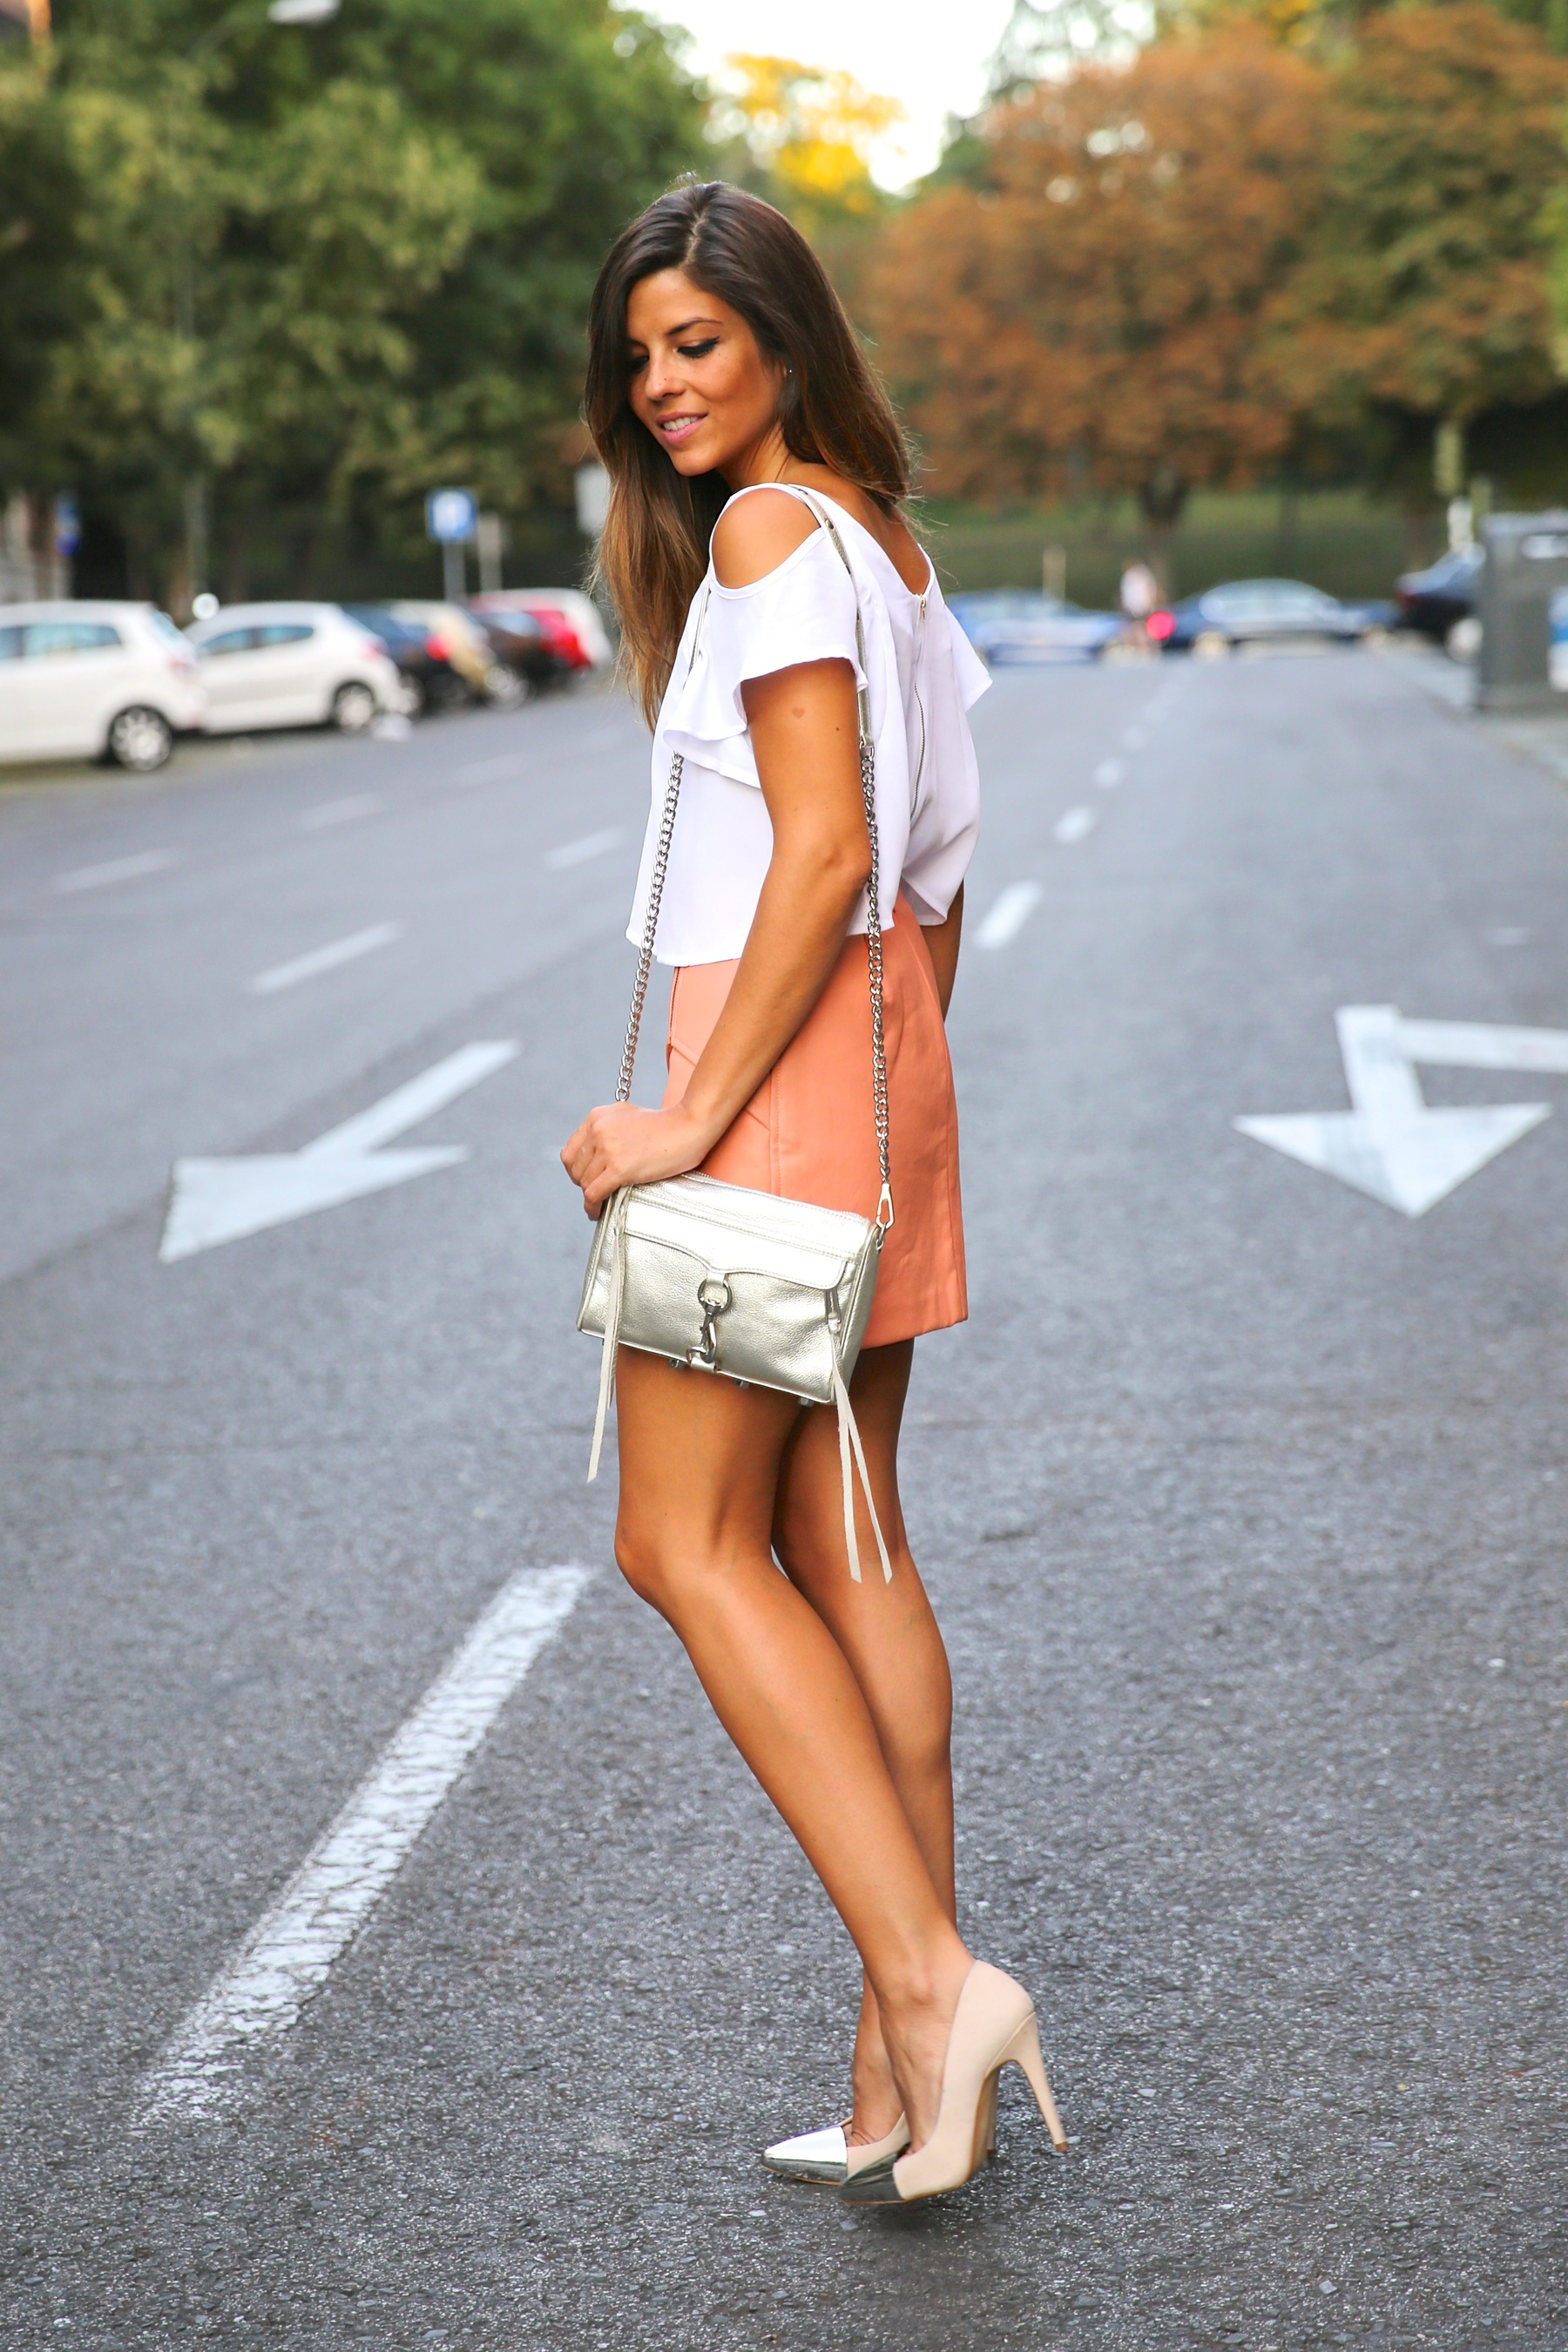 trendy_taste-look-outfit-street_style-ootd-blog-blogger-fashion_spain-moda_españa-madrid-silver_stilettos-punta_plata-estiletos-falda_coral-coral_skirt-top-15